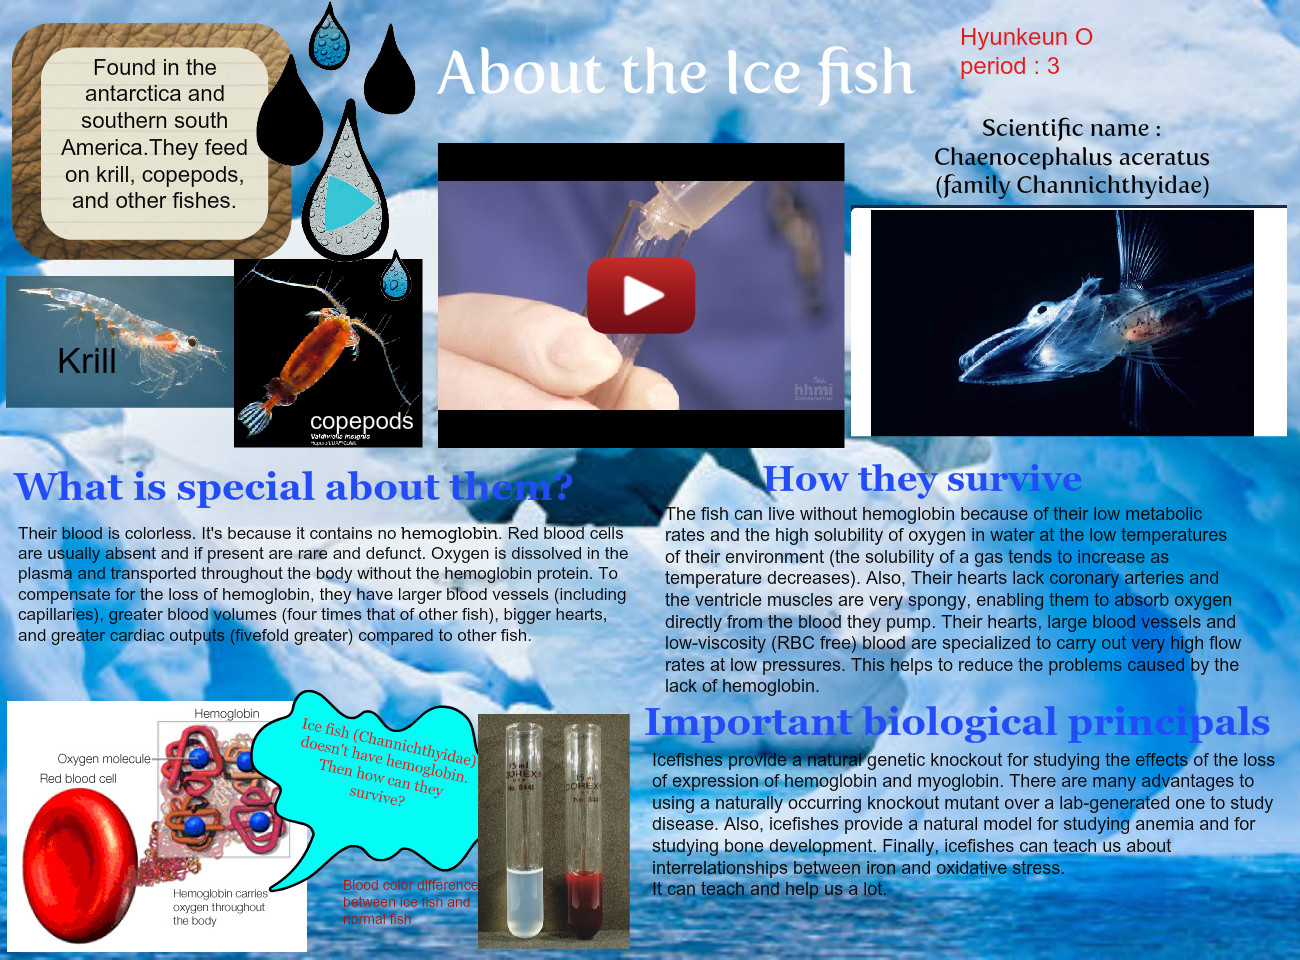 About the Icefish